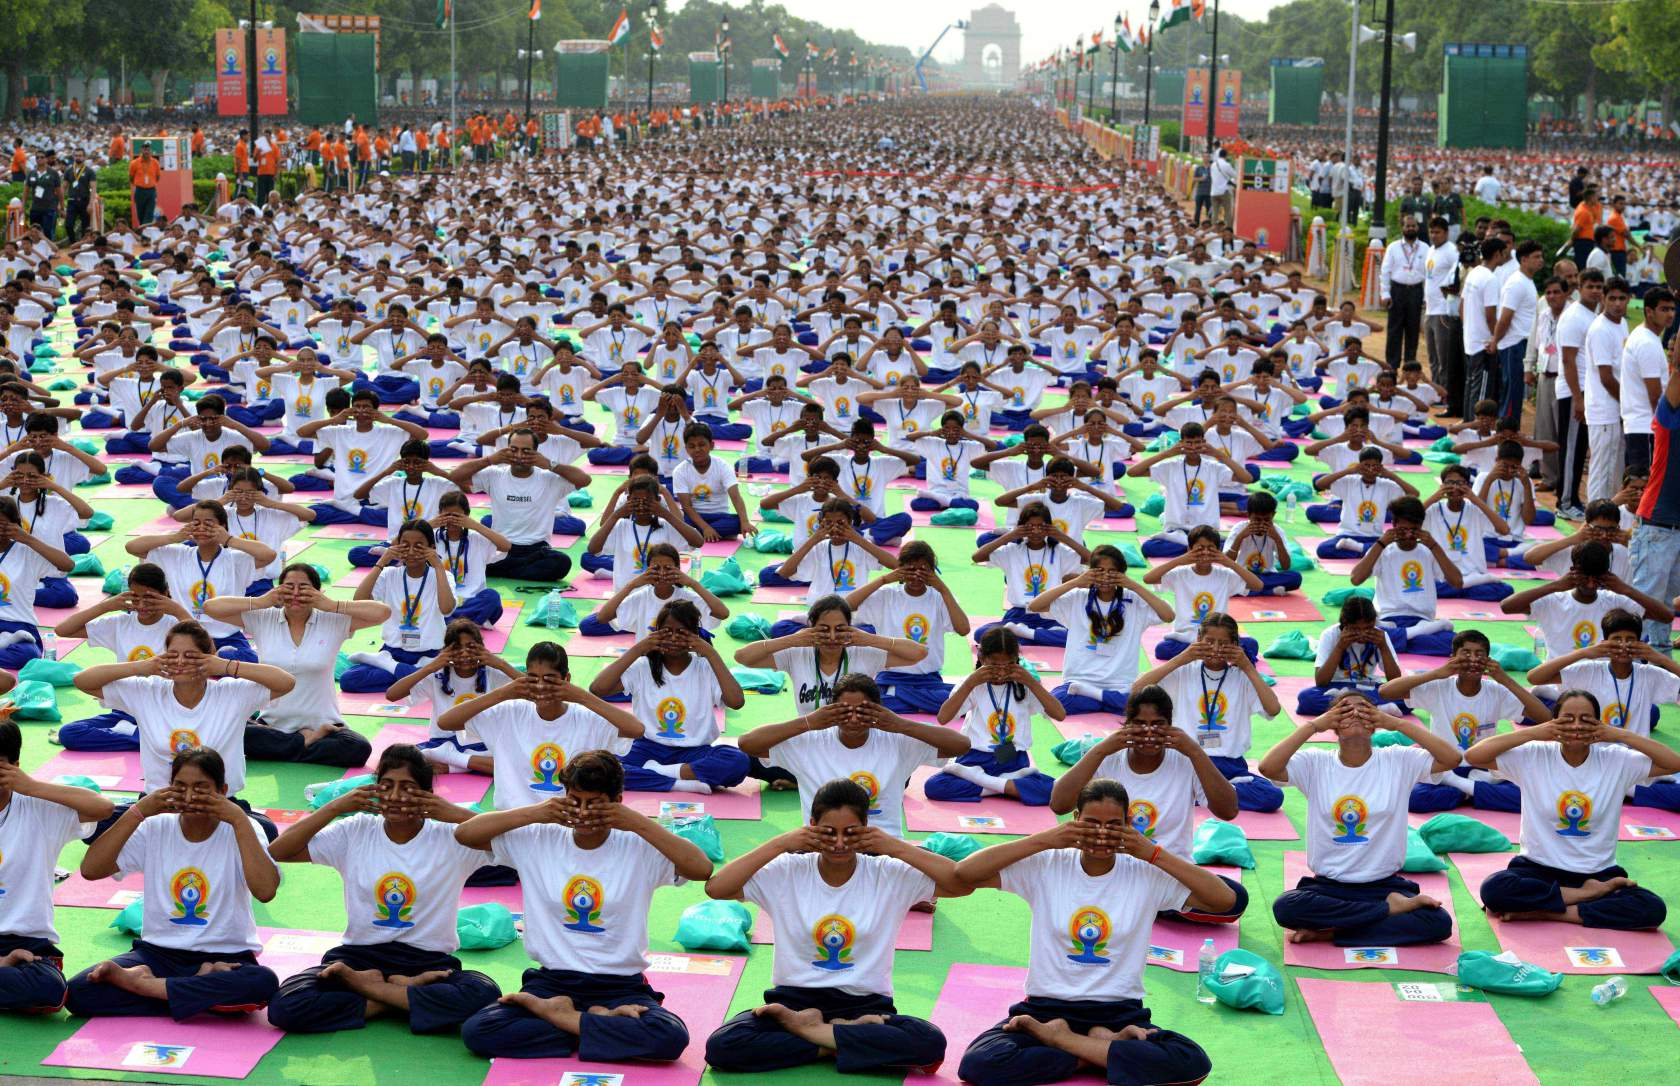 NEW, DELHI - INDIA: Indian Prime Minister Narendra Modi (not seen) performs yoga along with others at Rajpath during mass yoga session to mark the International Day of Yoga on June 21, 2015 in New Delhi, India. An estimated 40,000 people participated in the celebrations at Rajpath, with around two billion people taking part across the world. The yoga celebrations are being organised after the United Nations had in December last year declared June 21 as International Yoga Day. (Photo by Vinod Singh/Anadolu Agency/Getty Images)